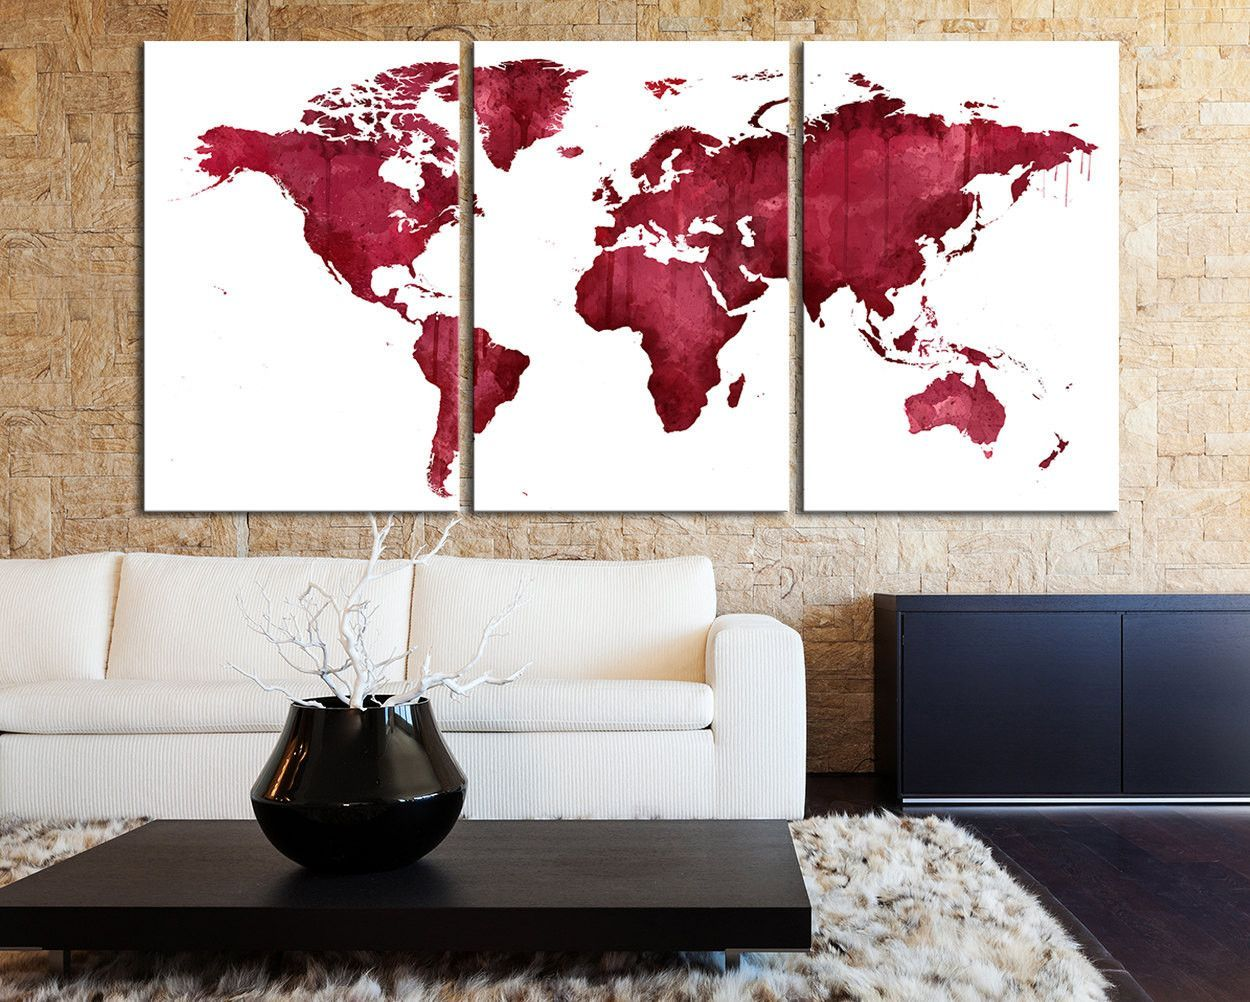 Burgundy Wall Art extra large wall art pink and burgundy world map canvas print - 3